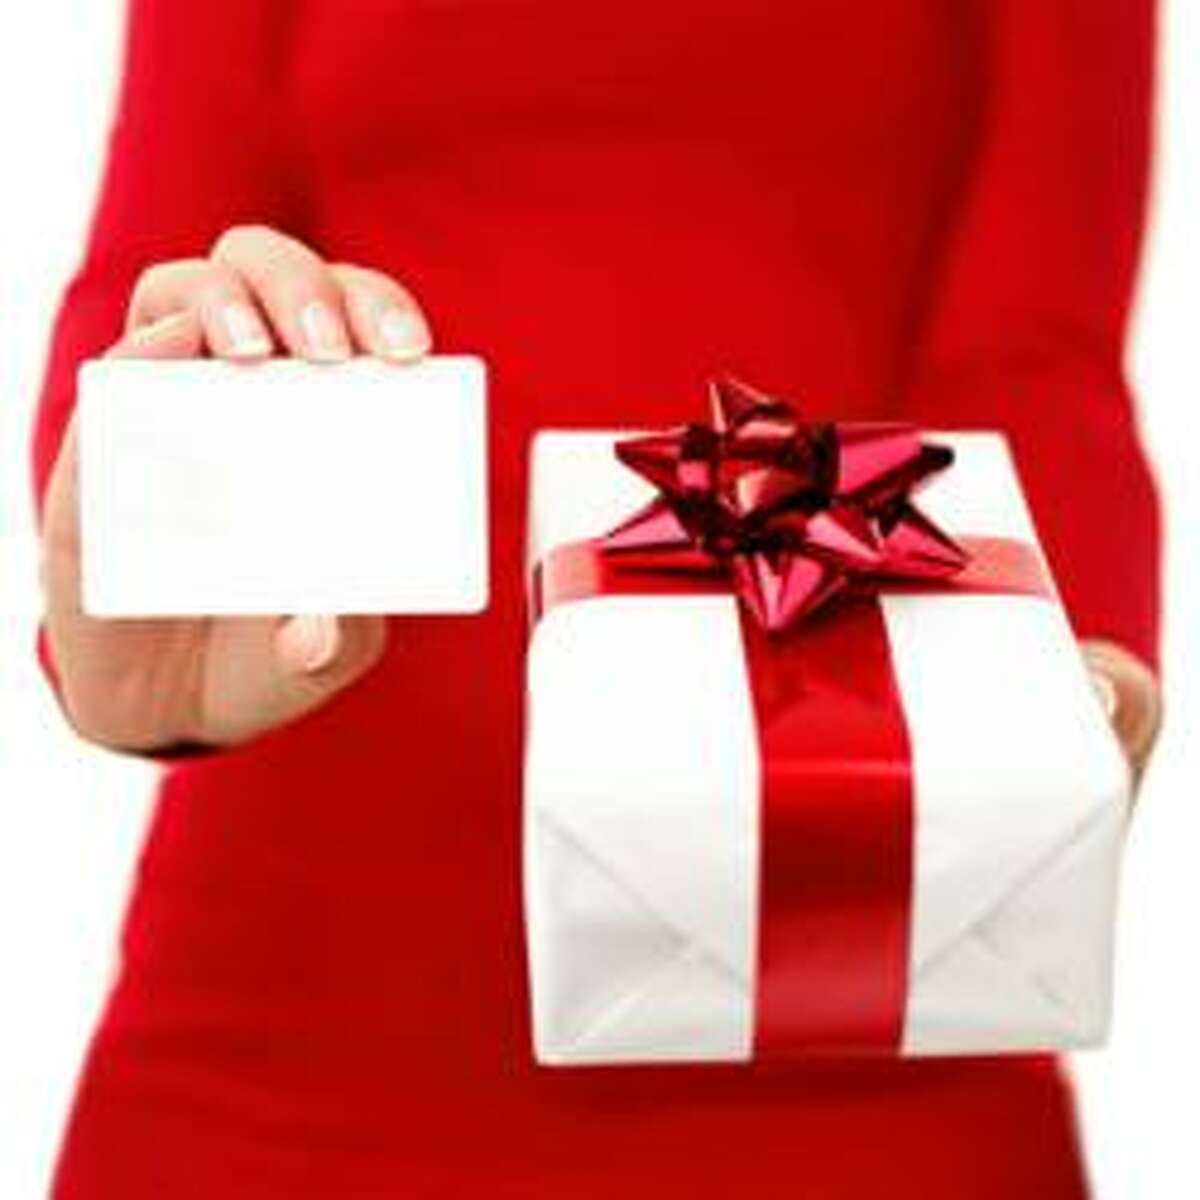 This holiday season, stores and restaurants are offering bonus gift cards and special incentives. In most cases, the rewards can only be redeemed during a limited window and can't be used until the new year, so be sure to check the fine print. Click through to see some of the bonuses you can get.